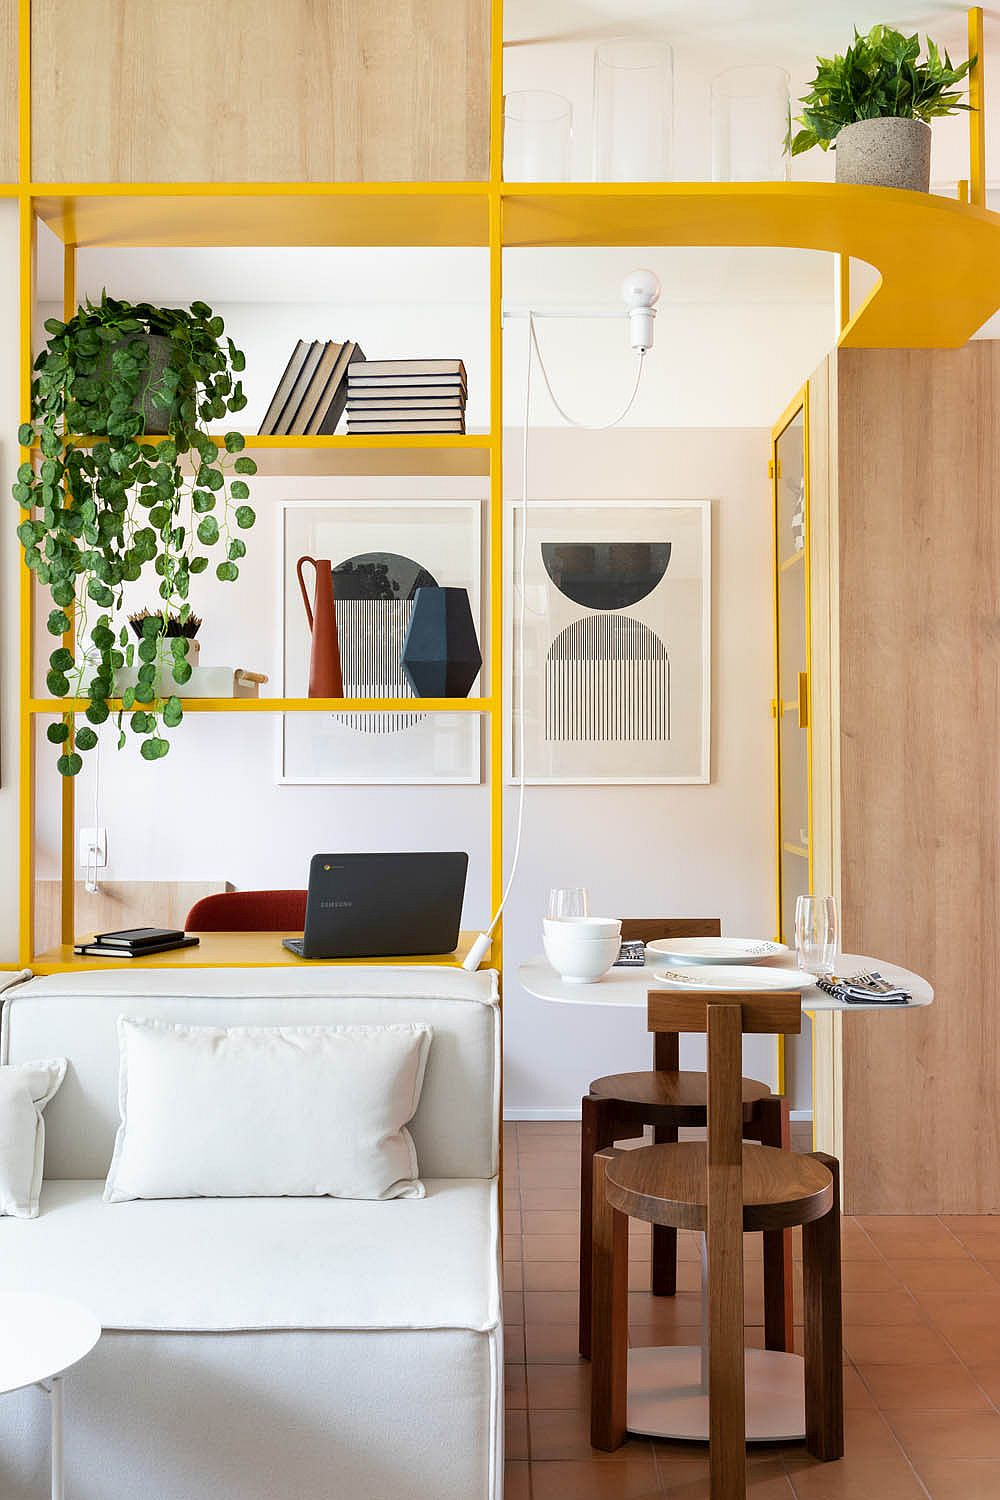 Tiny-breakfast-zone-next-to-the-home-workstation-in-yellow-14670